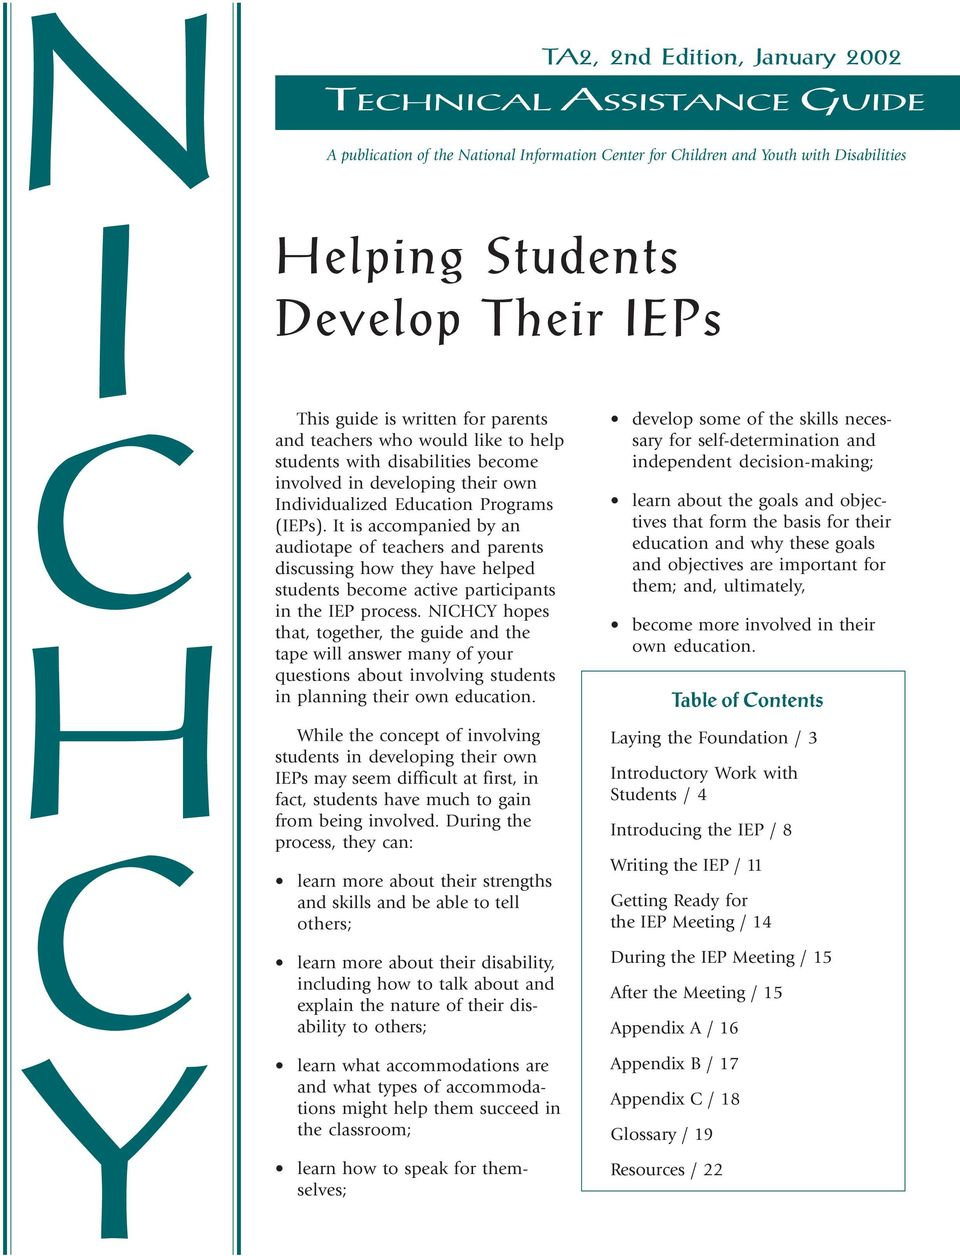 It is accompanied by an audiotape of teachers and parents discussing how they have helped students become active participants in the IEP process.